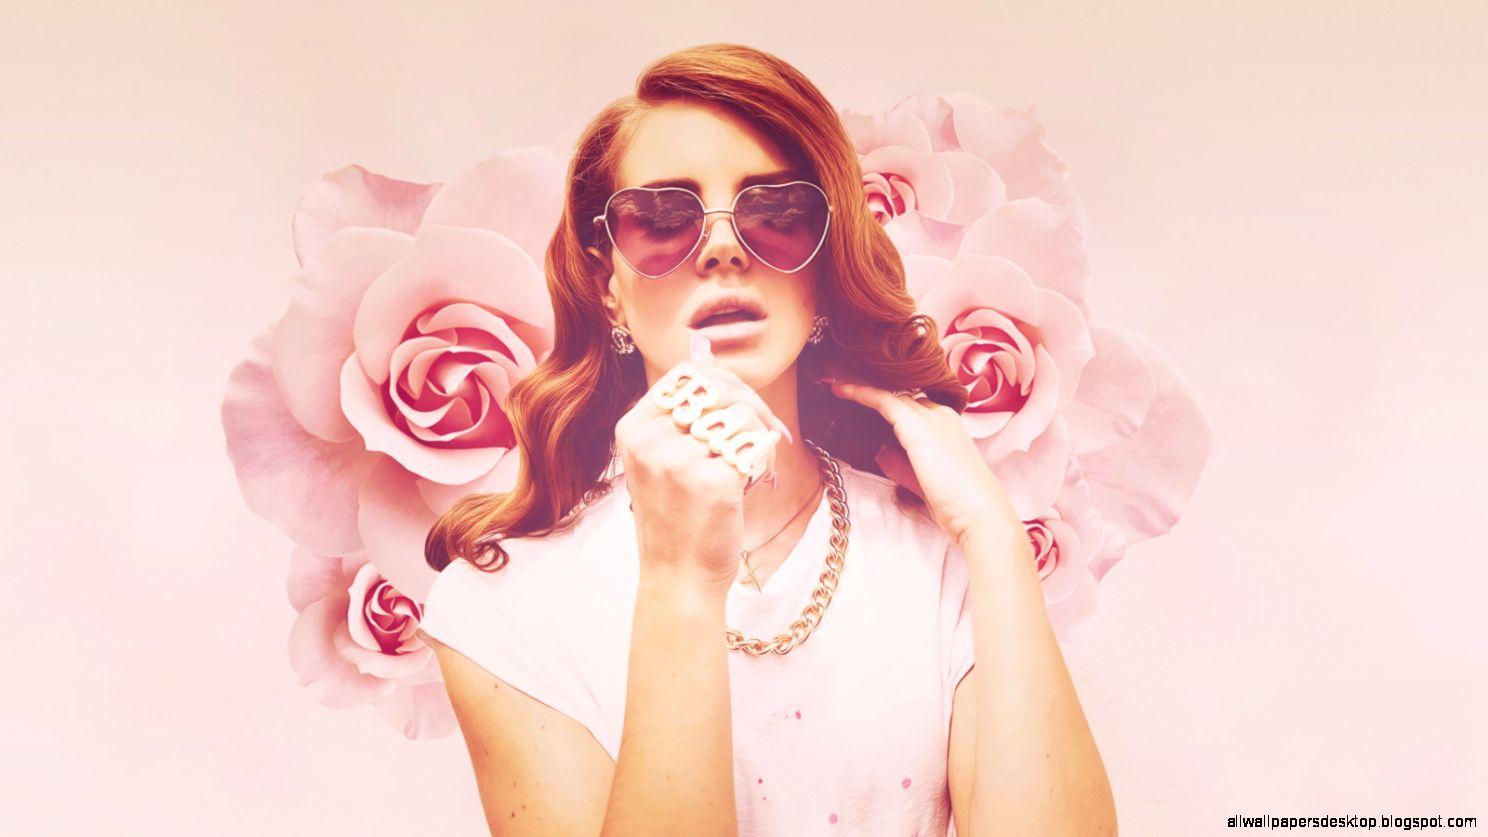 Singer Lana Del Rey Wallpapers